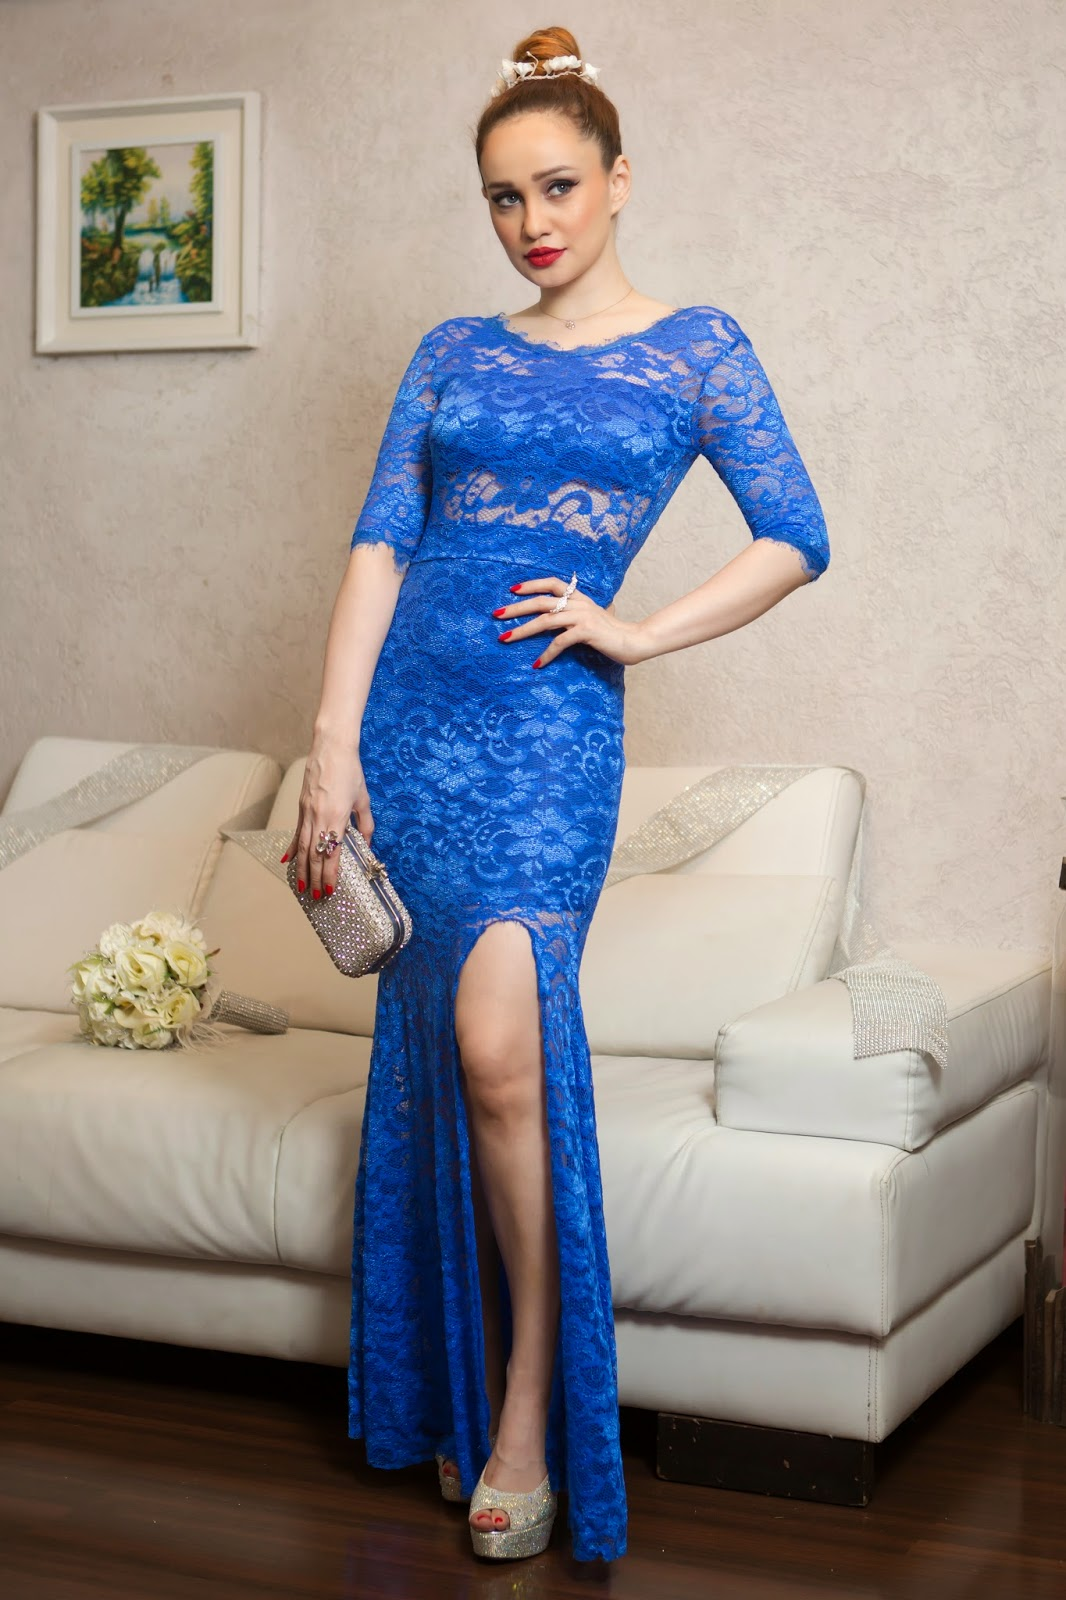 Sheinside Blue Lace Dress